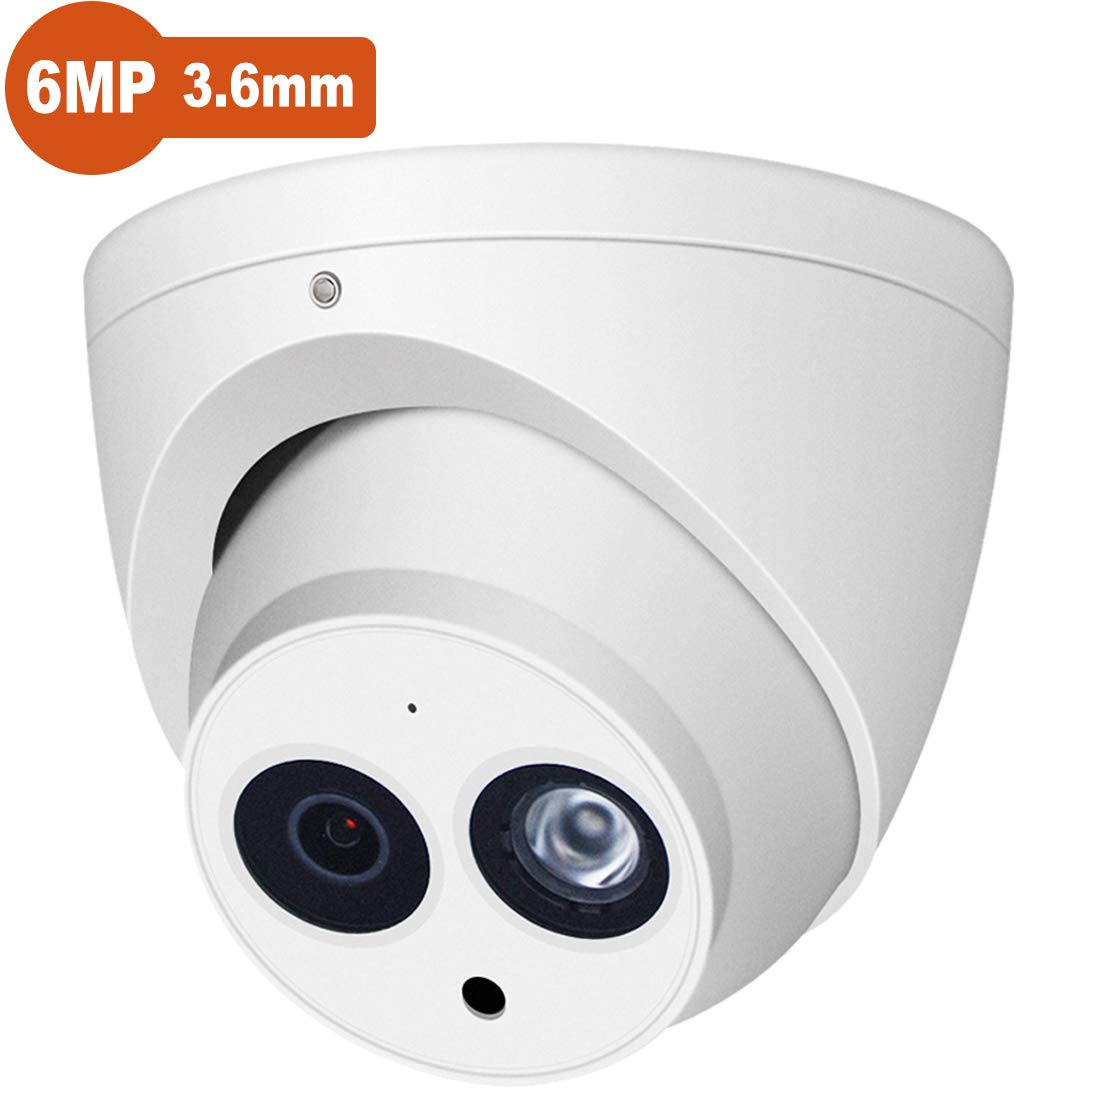 6MP PoE Outdoor IP Camera, IPC-HDW4631C-A 3.6mm Lens, Dome EXIR Turret Security Network Surveillance Camera, Up to 98ft 30m Night Vision, H.265, IP67, ONVIF